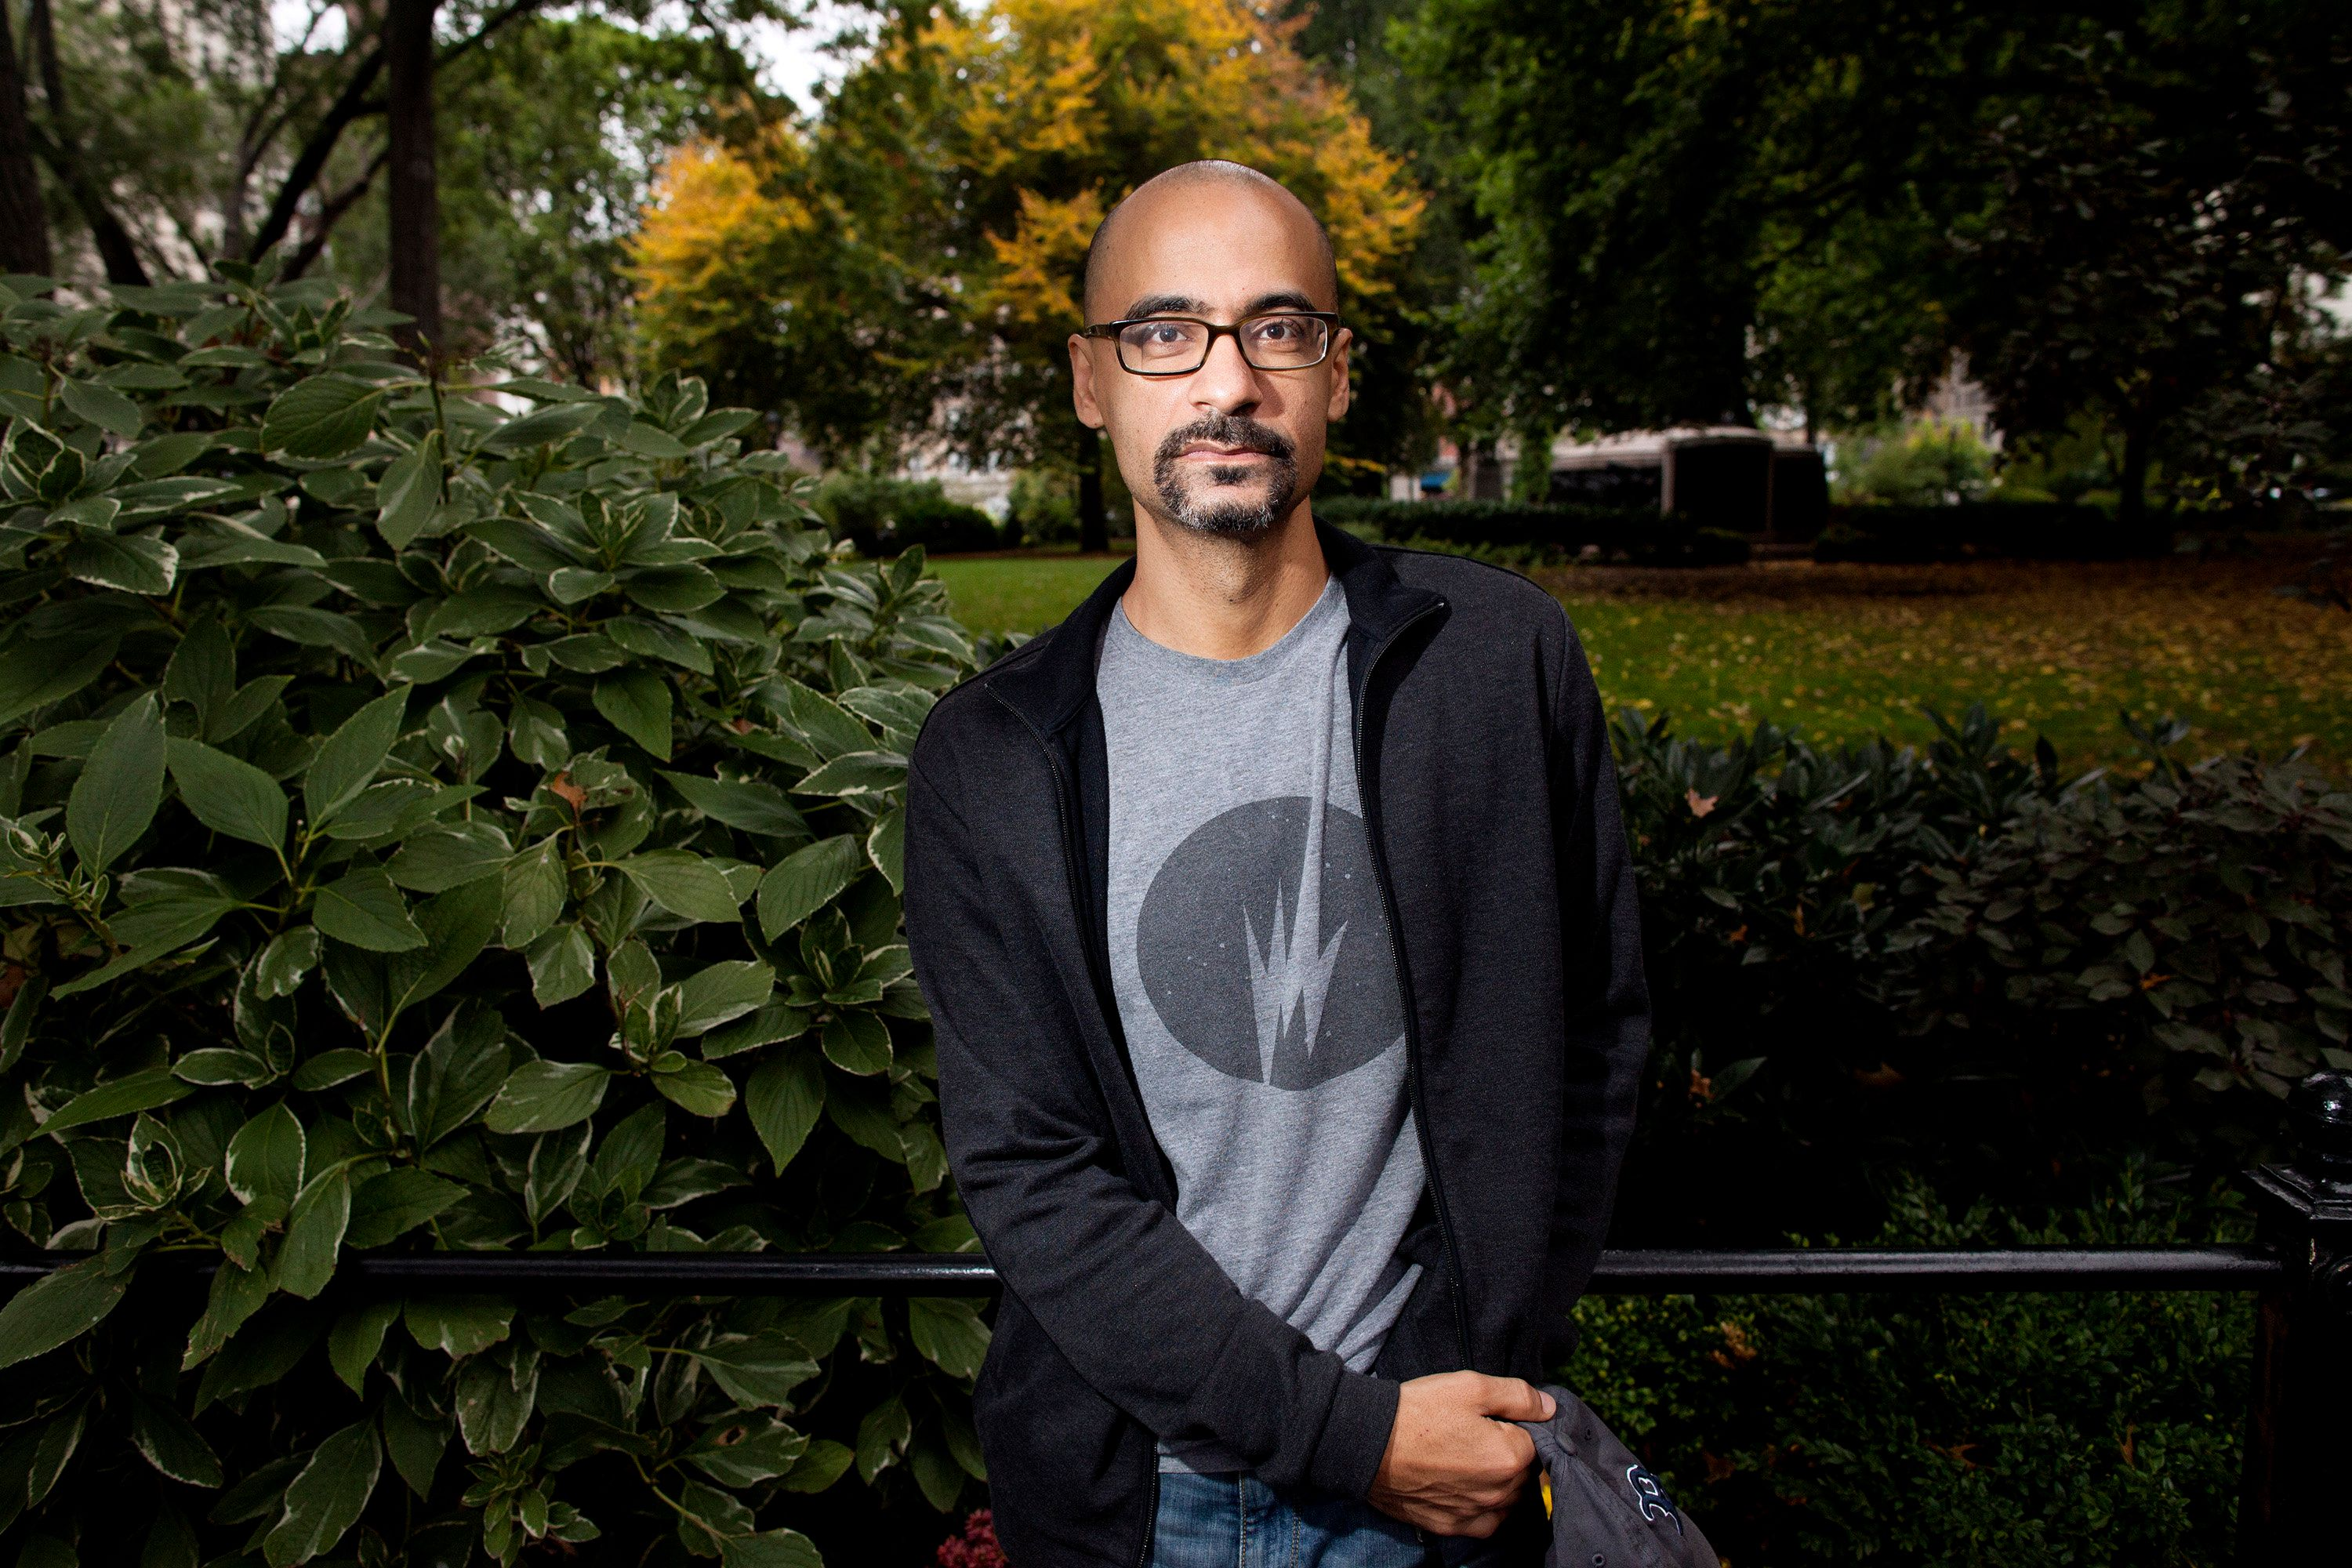 Author Junot Diaz poses in Union Square in New York, N.Y. on Oct. 7, 2013. (Brian Harkin/Chicago Tribune/TNS via Getty Images)